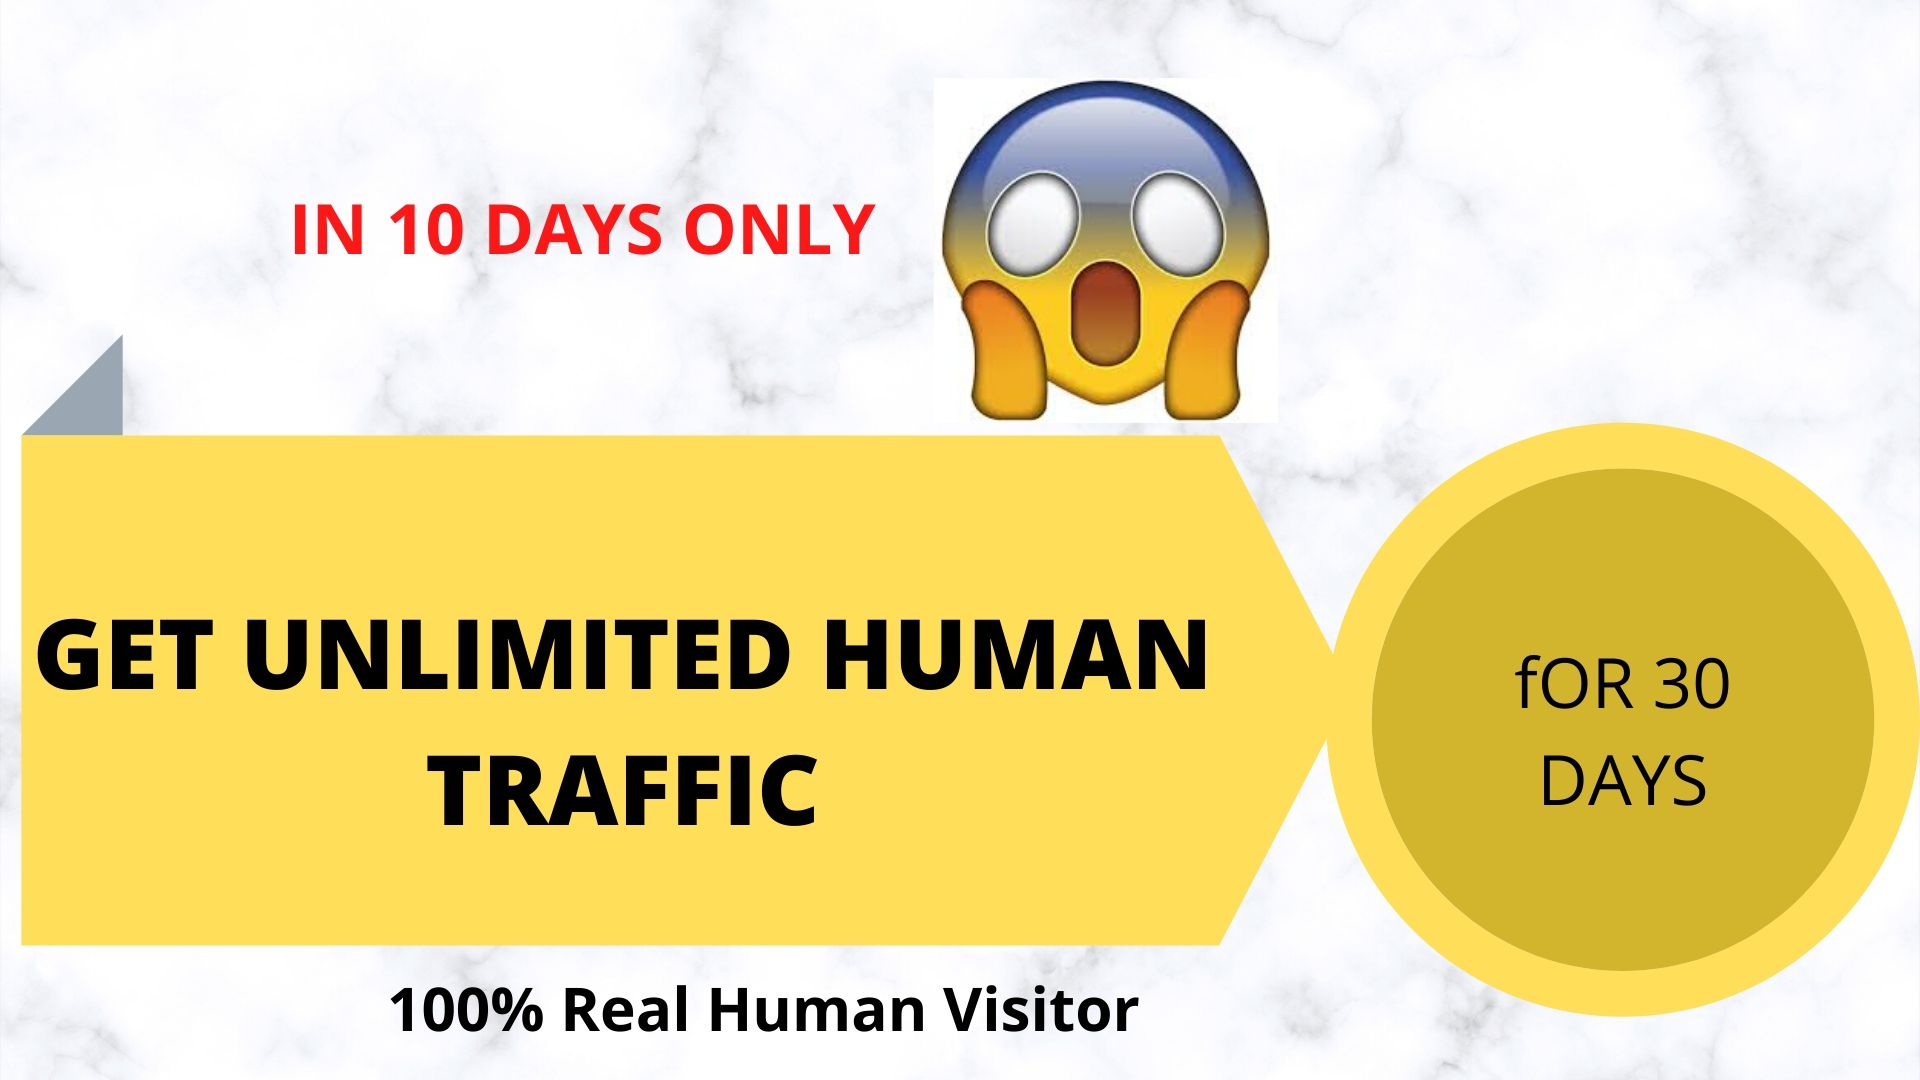 GET UNLIMITED HUMAN TRAFFIC BY Google and all the other social media to your website for 30 days